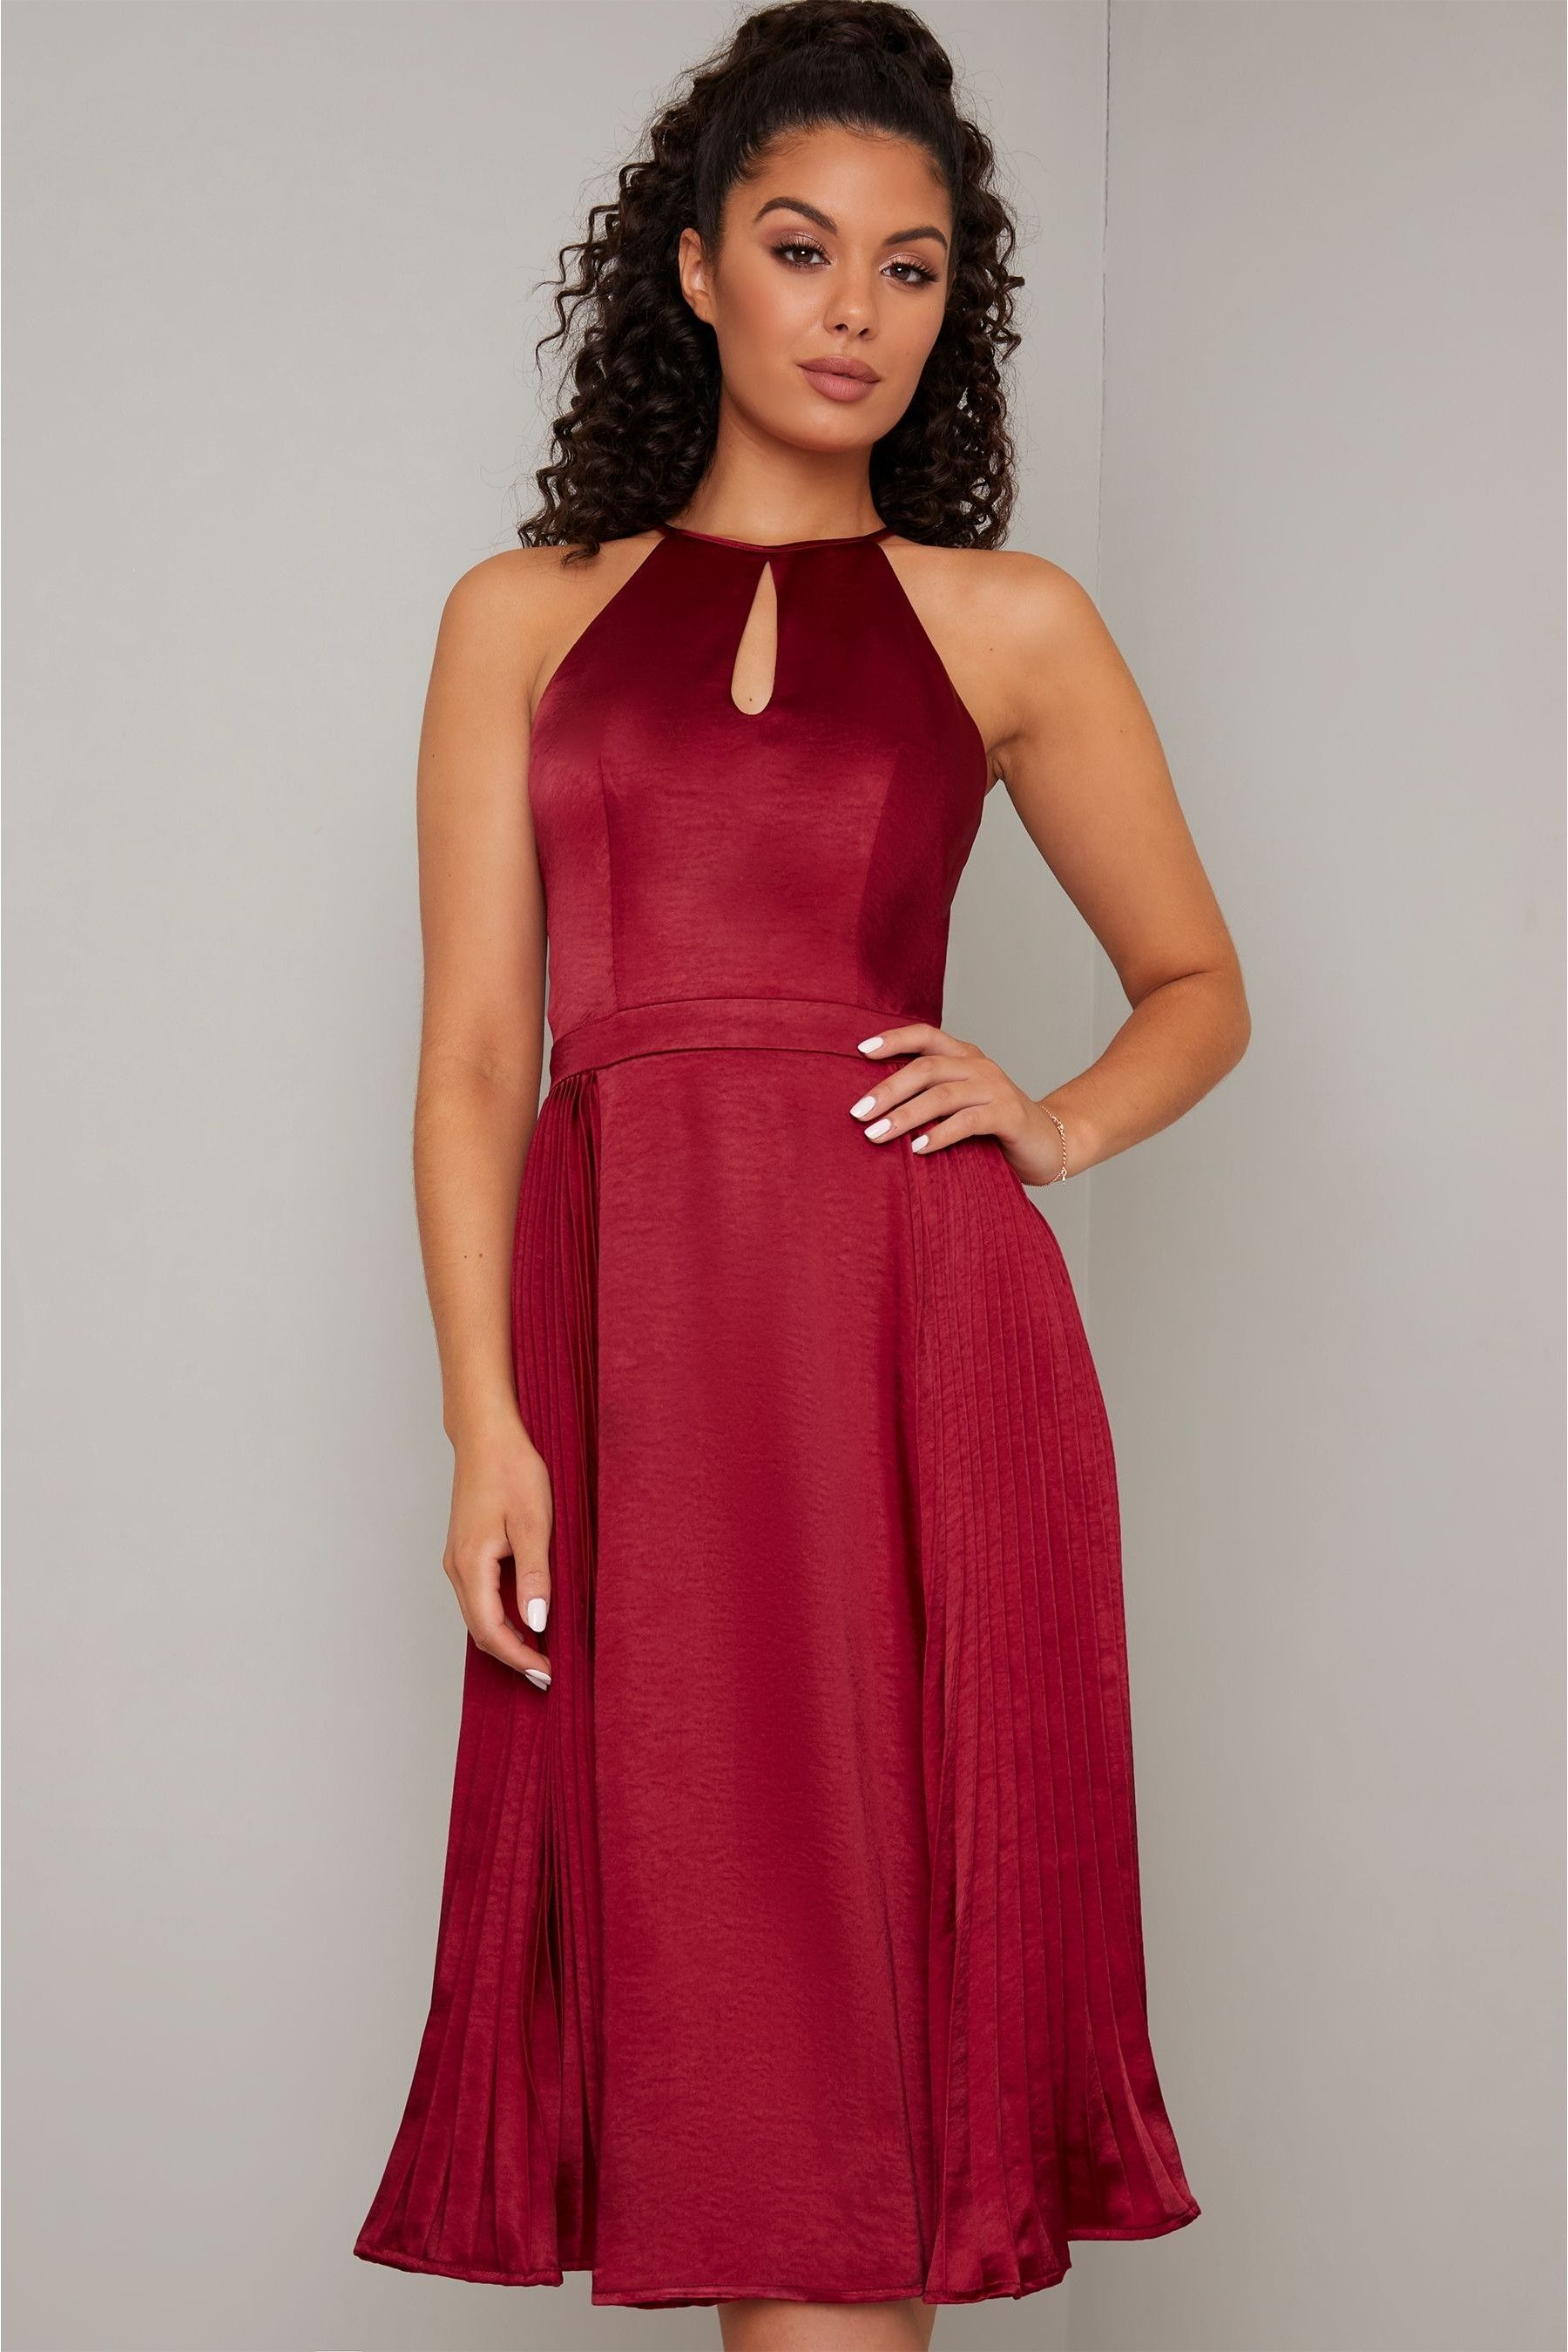 Buy Chi Chi London Amee Dress From The Next Uk Online Shop Dresses Pleated Midi Dress Casual Summer Dresses